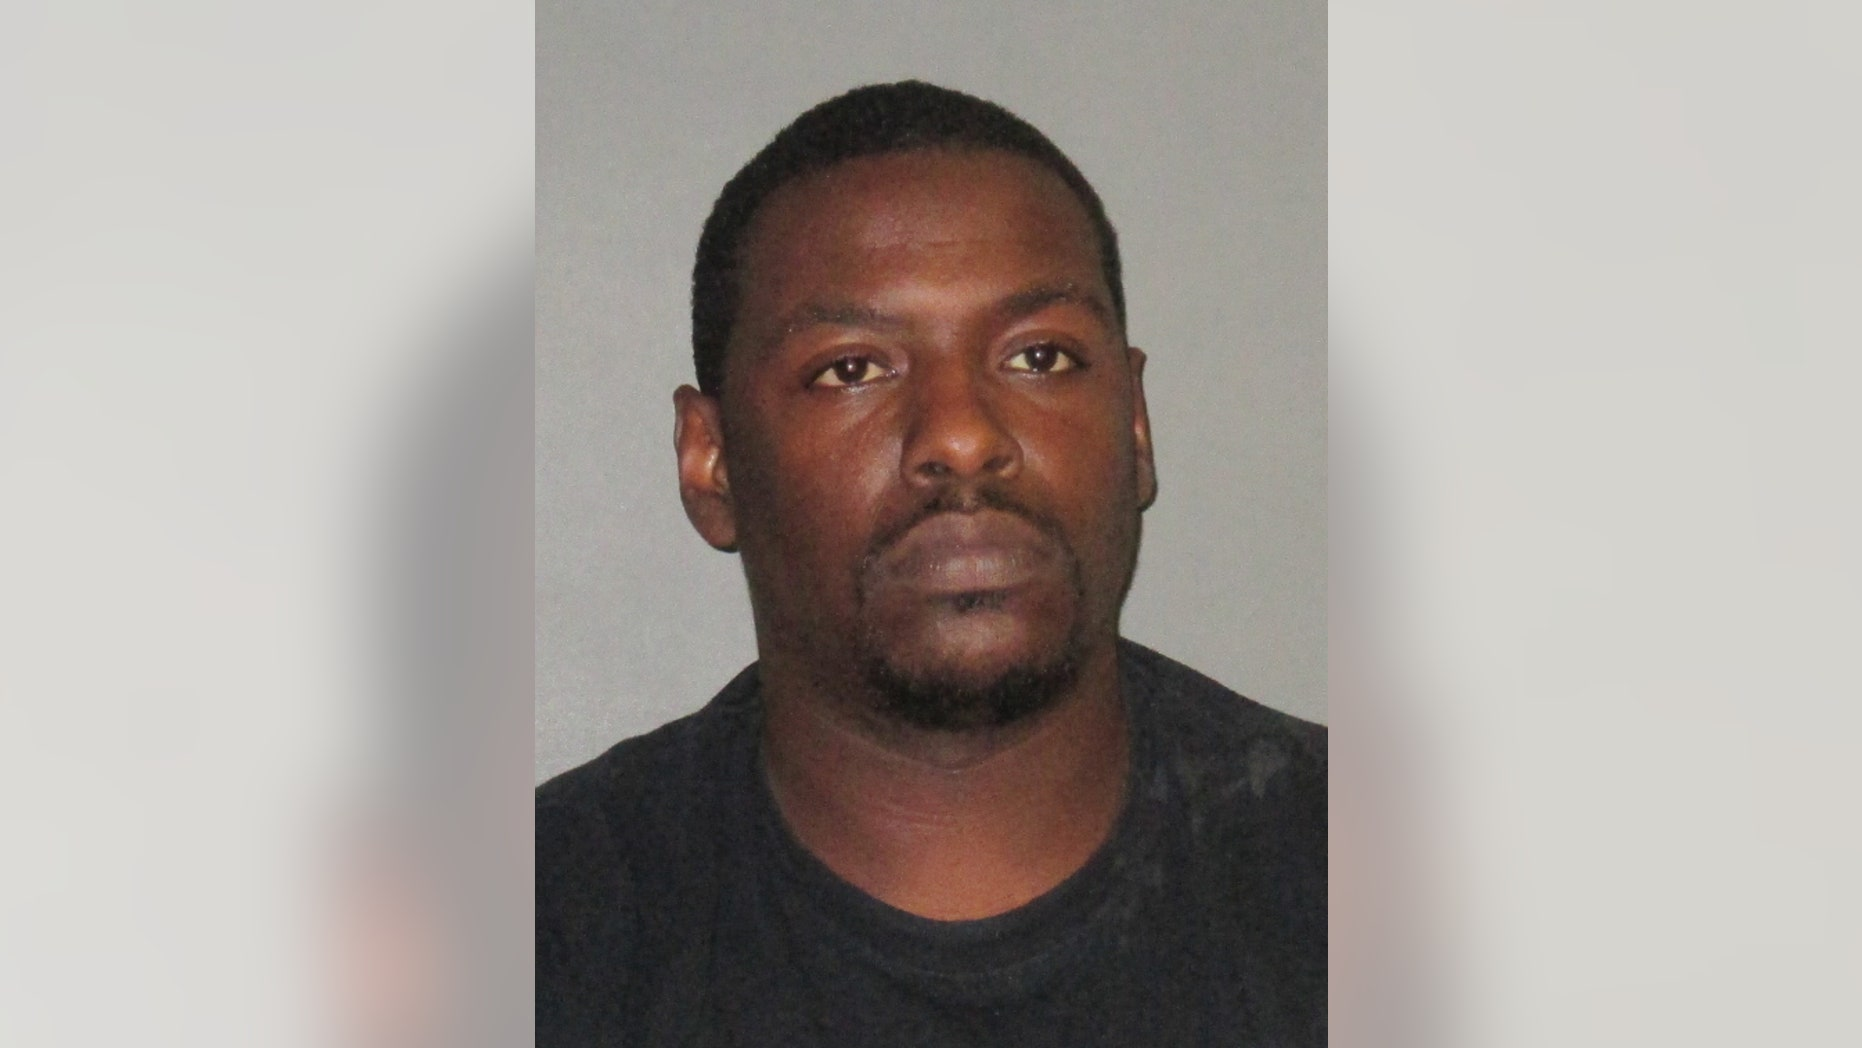 This photo provided by the East Baton Rouge Parish Sheriff's Office shows Marvin Mercer, the father of an 8-month-old Louisiana girl who died after being left in a hot car for about two hours. Mercer was arrested Wednesday, June 8, 2016, police said. (East Baton Rouge Parish Sheriff's Office via AP) MANDATORY CREDIT